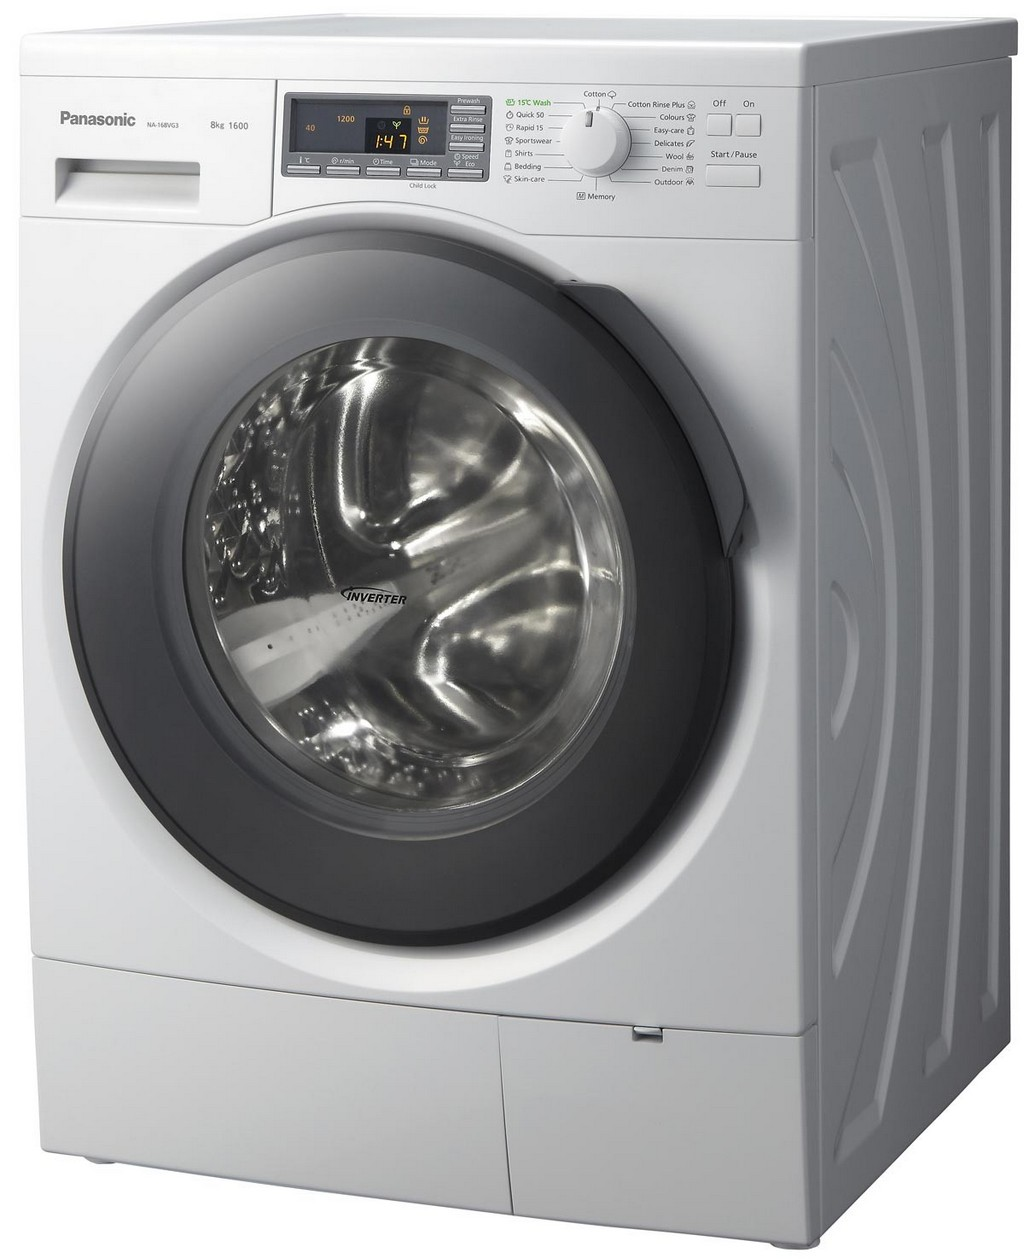 washing machine, portable washing machine, panasonic washing machine